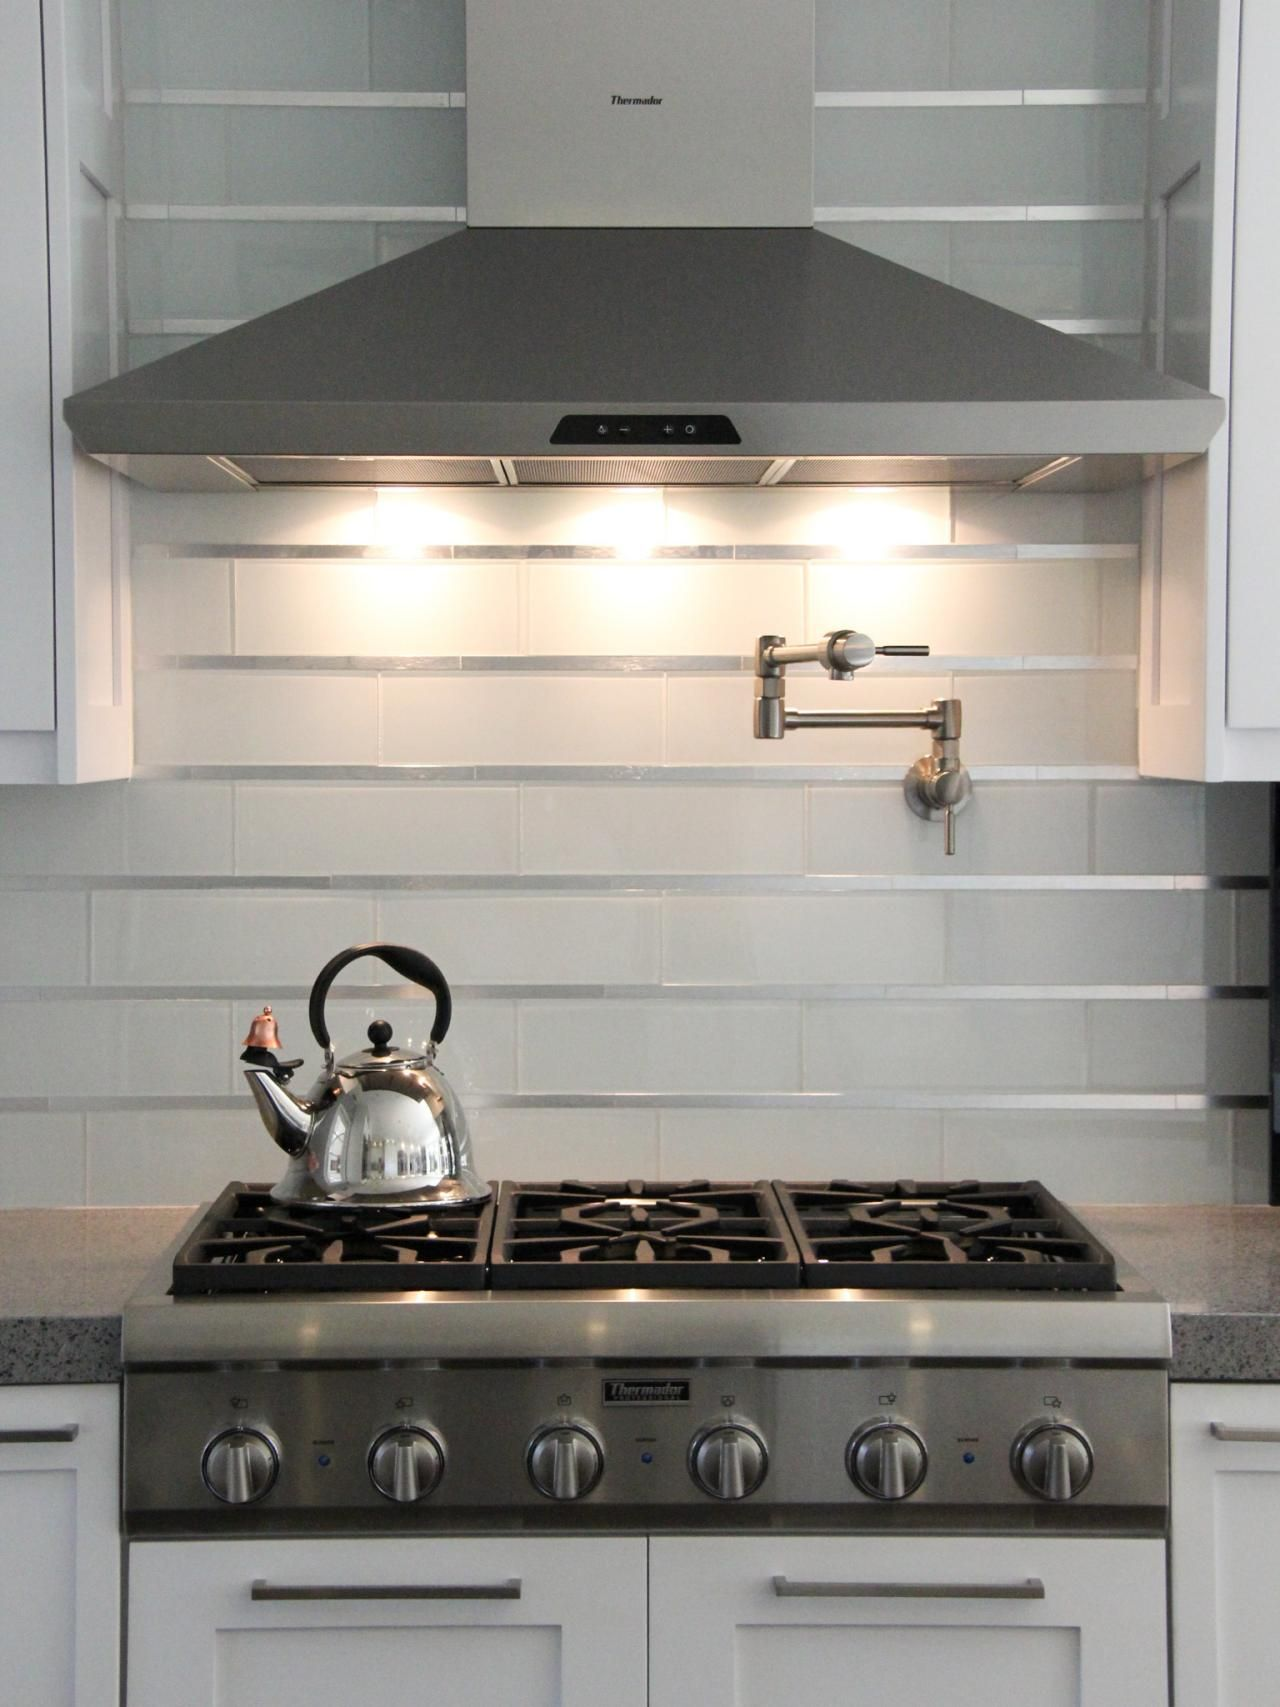 11 Creative Subway Tile Backsplash Ideas Kitchen Ideas Design Kitchen Backsplash Designs Subway Tile Backsplash Kitchen Stainless Steel Kitchen Backsplash